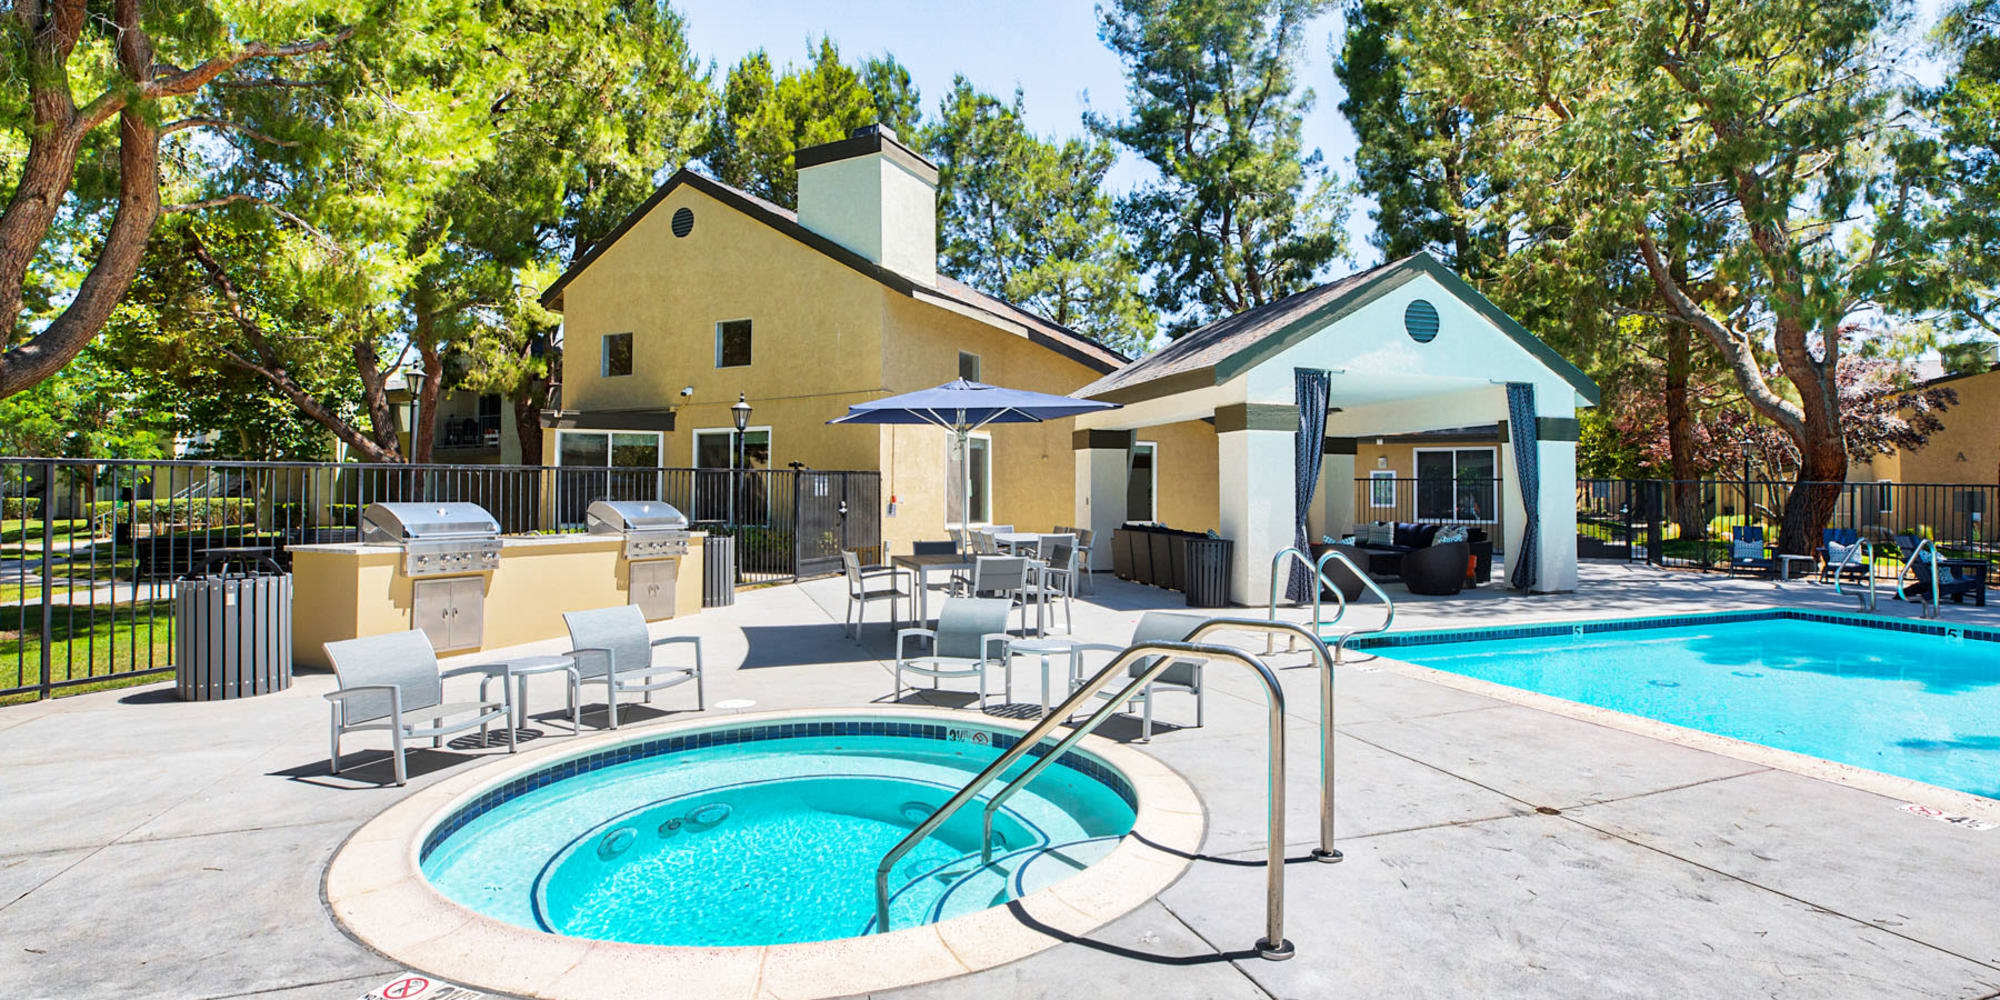 Gas barbecue grills near the spa and pool at Mountain Vista in Victorville, California